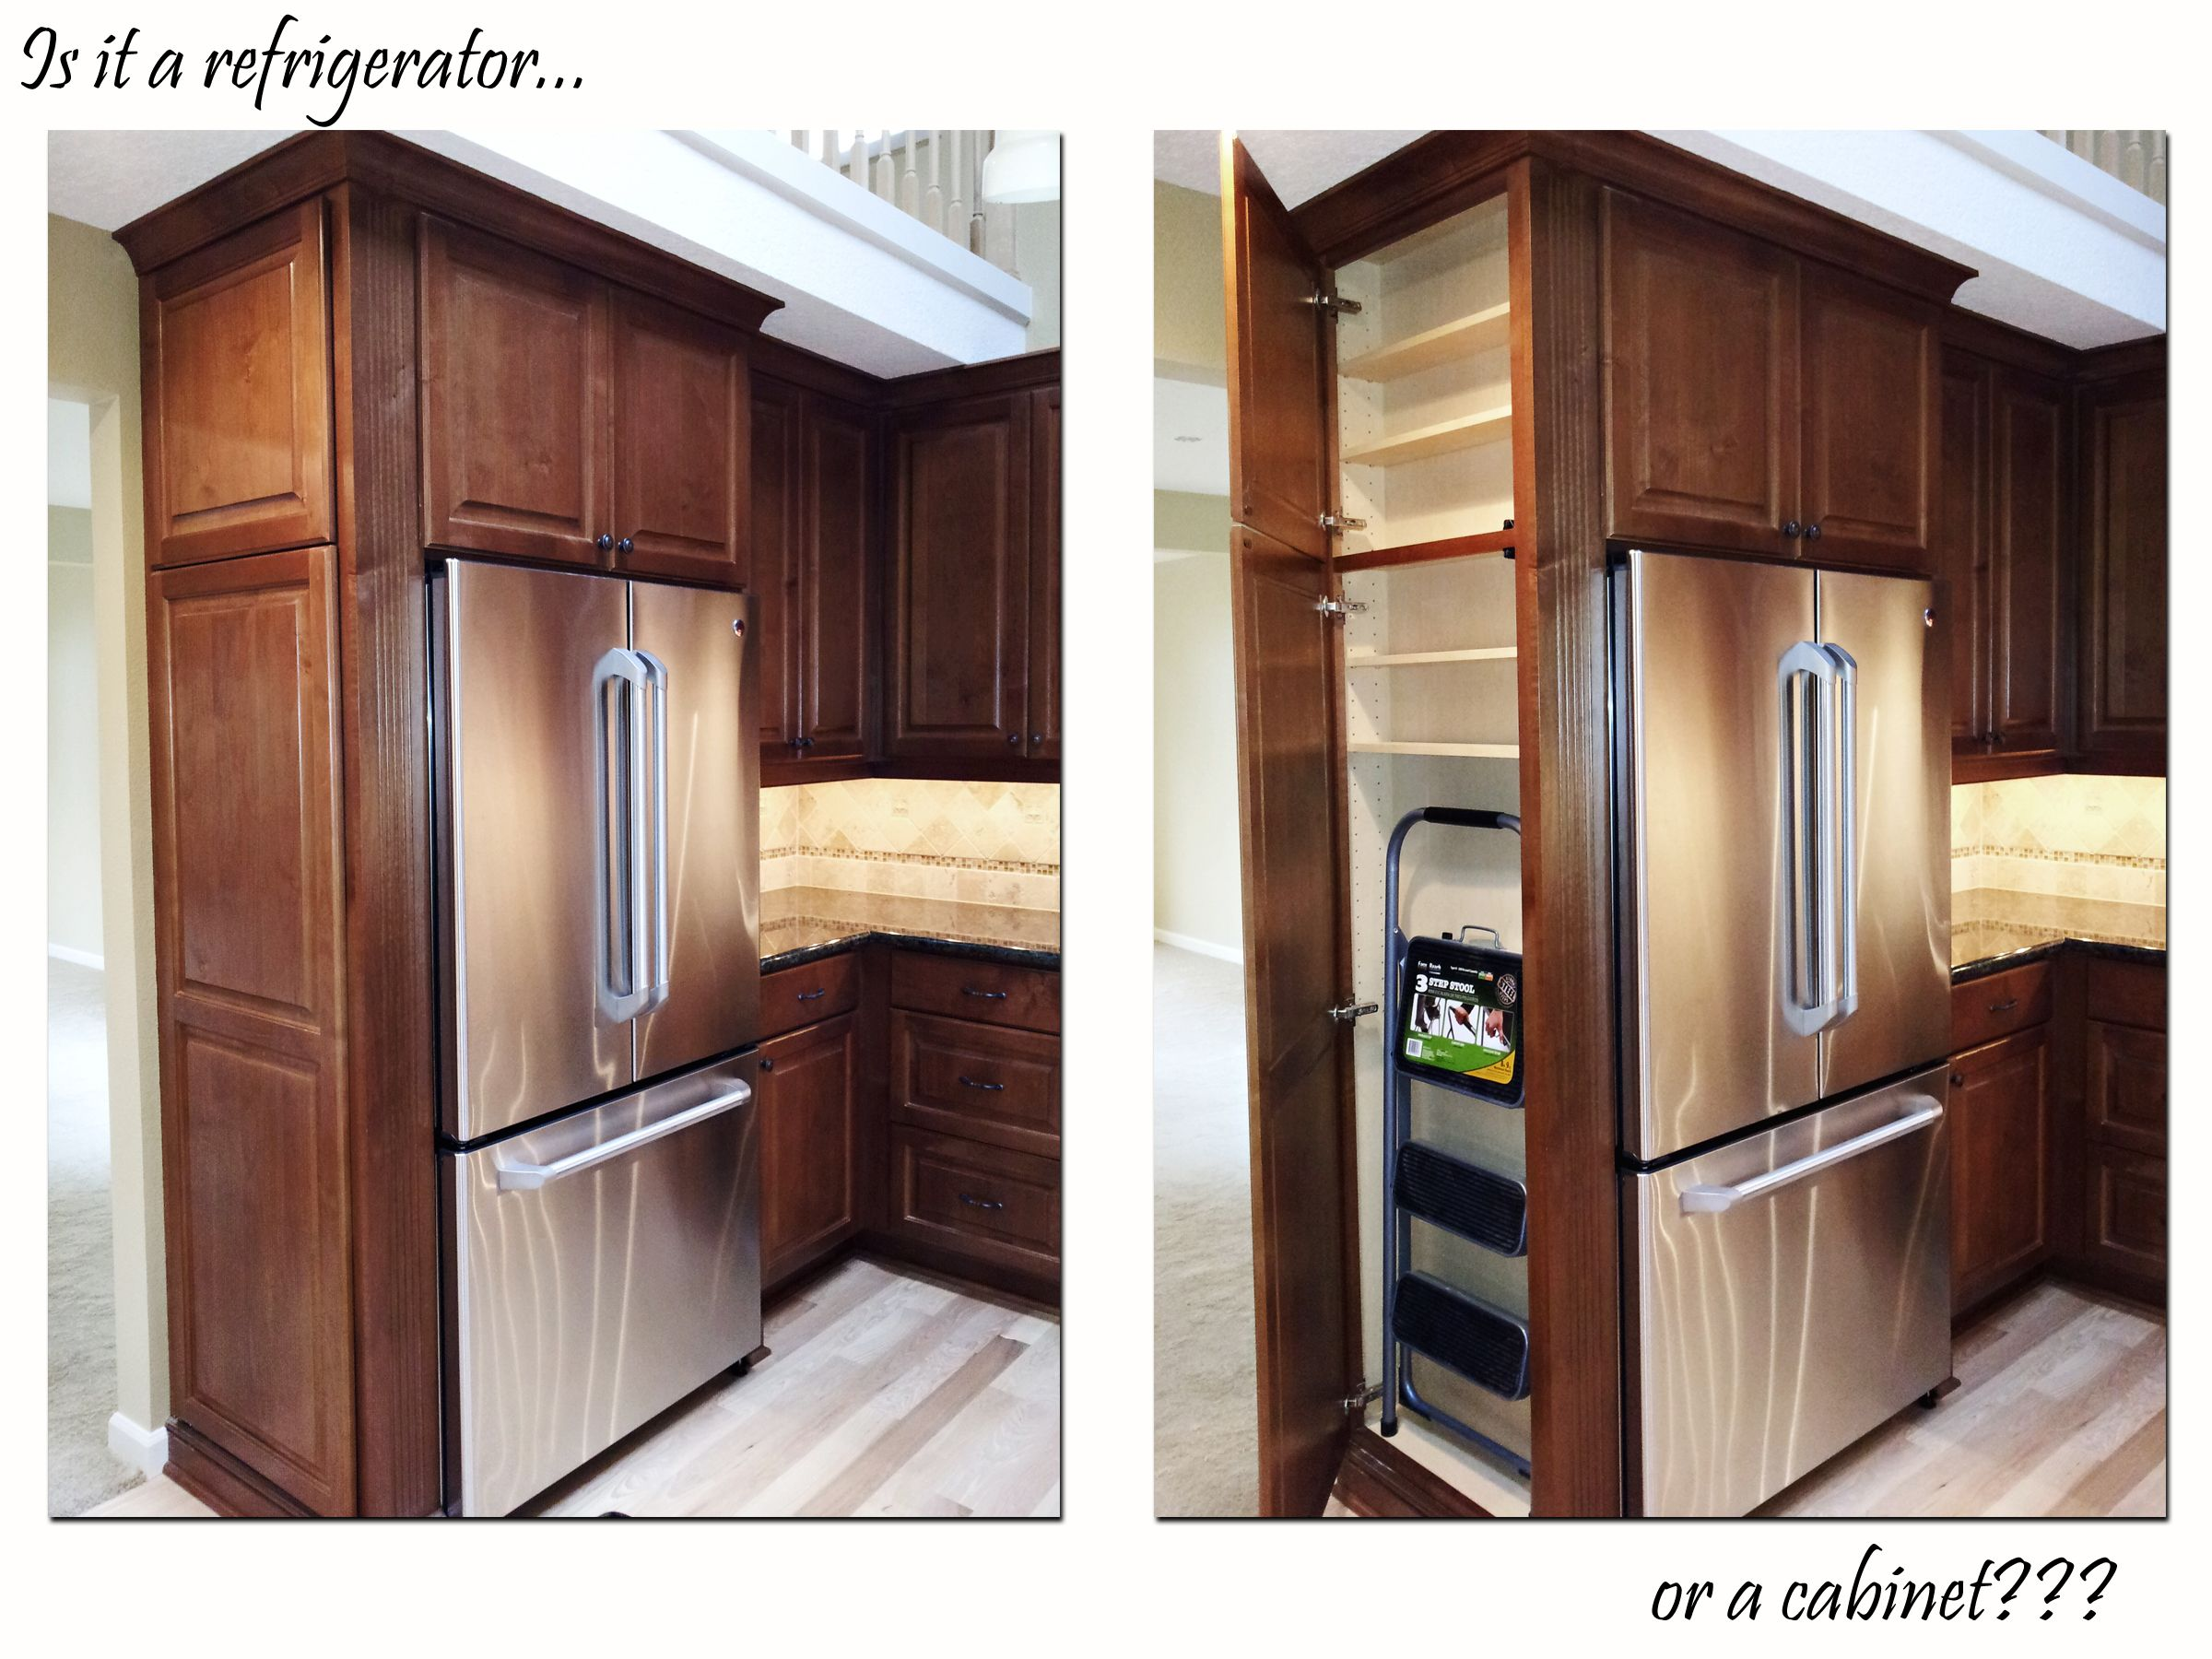 custom kitchen cabinets Building Cabinets And you can buy doors the hard part Explore the steps and learn how to build your own dream kitchen Build your own kitchen cabinets Why